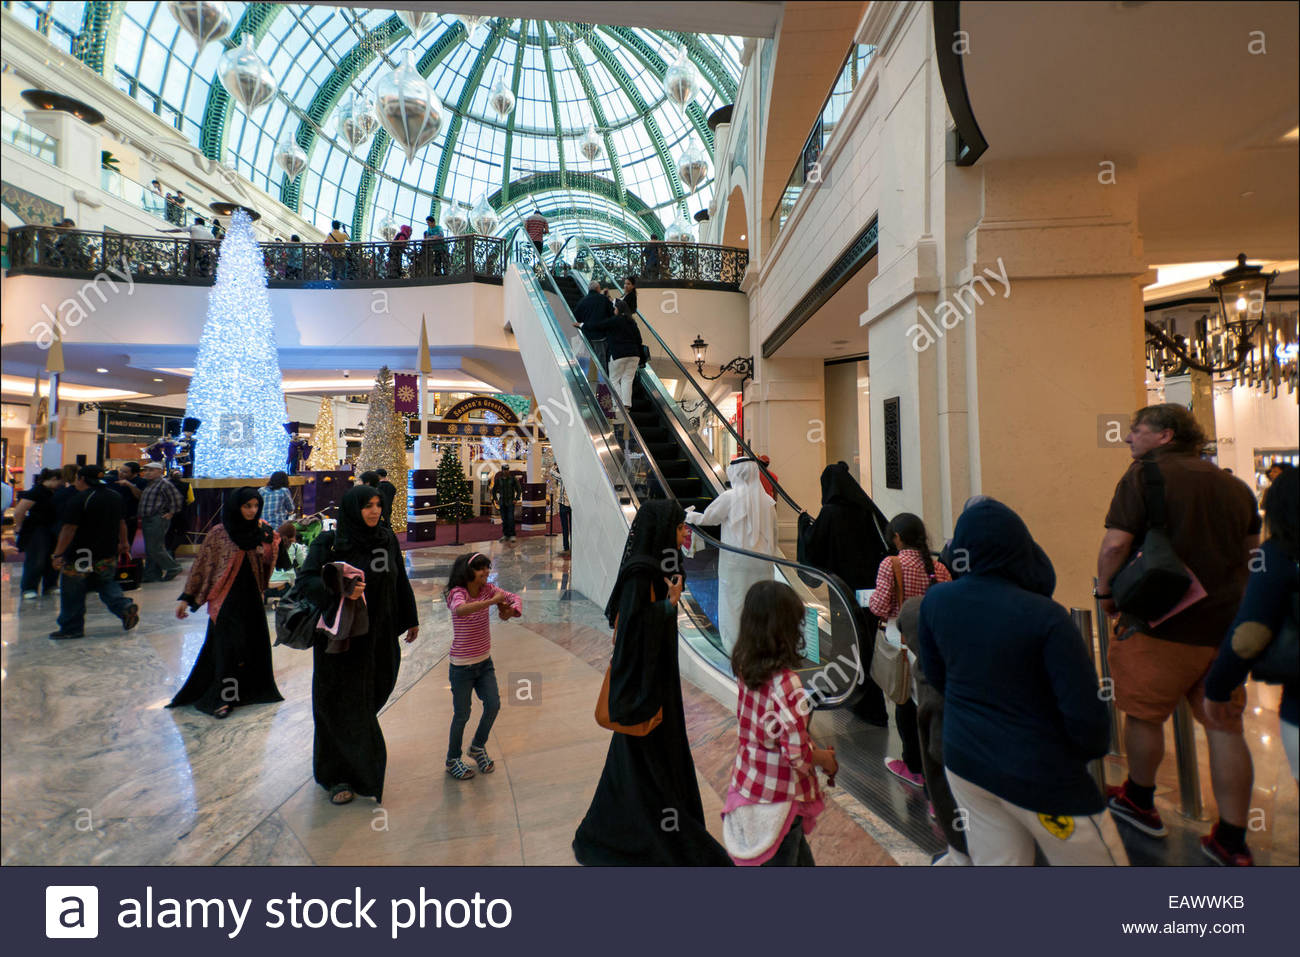 The  2.4 million square foot Mall of the Emirates, opened in 2005 in what is now deemed 'New Dubai' is one - Stock Image